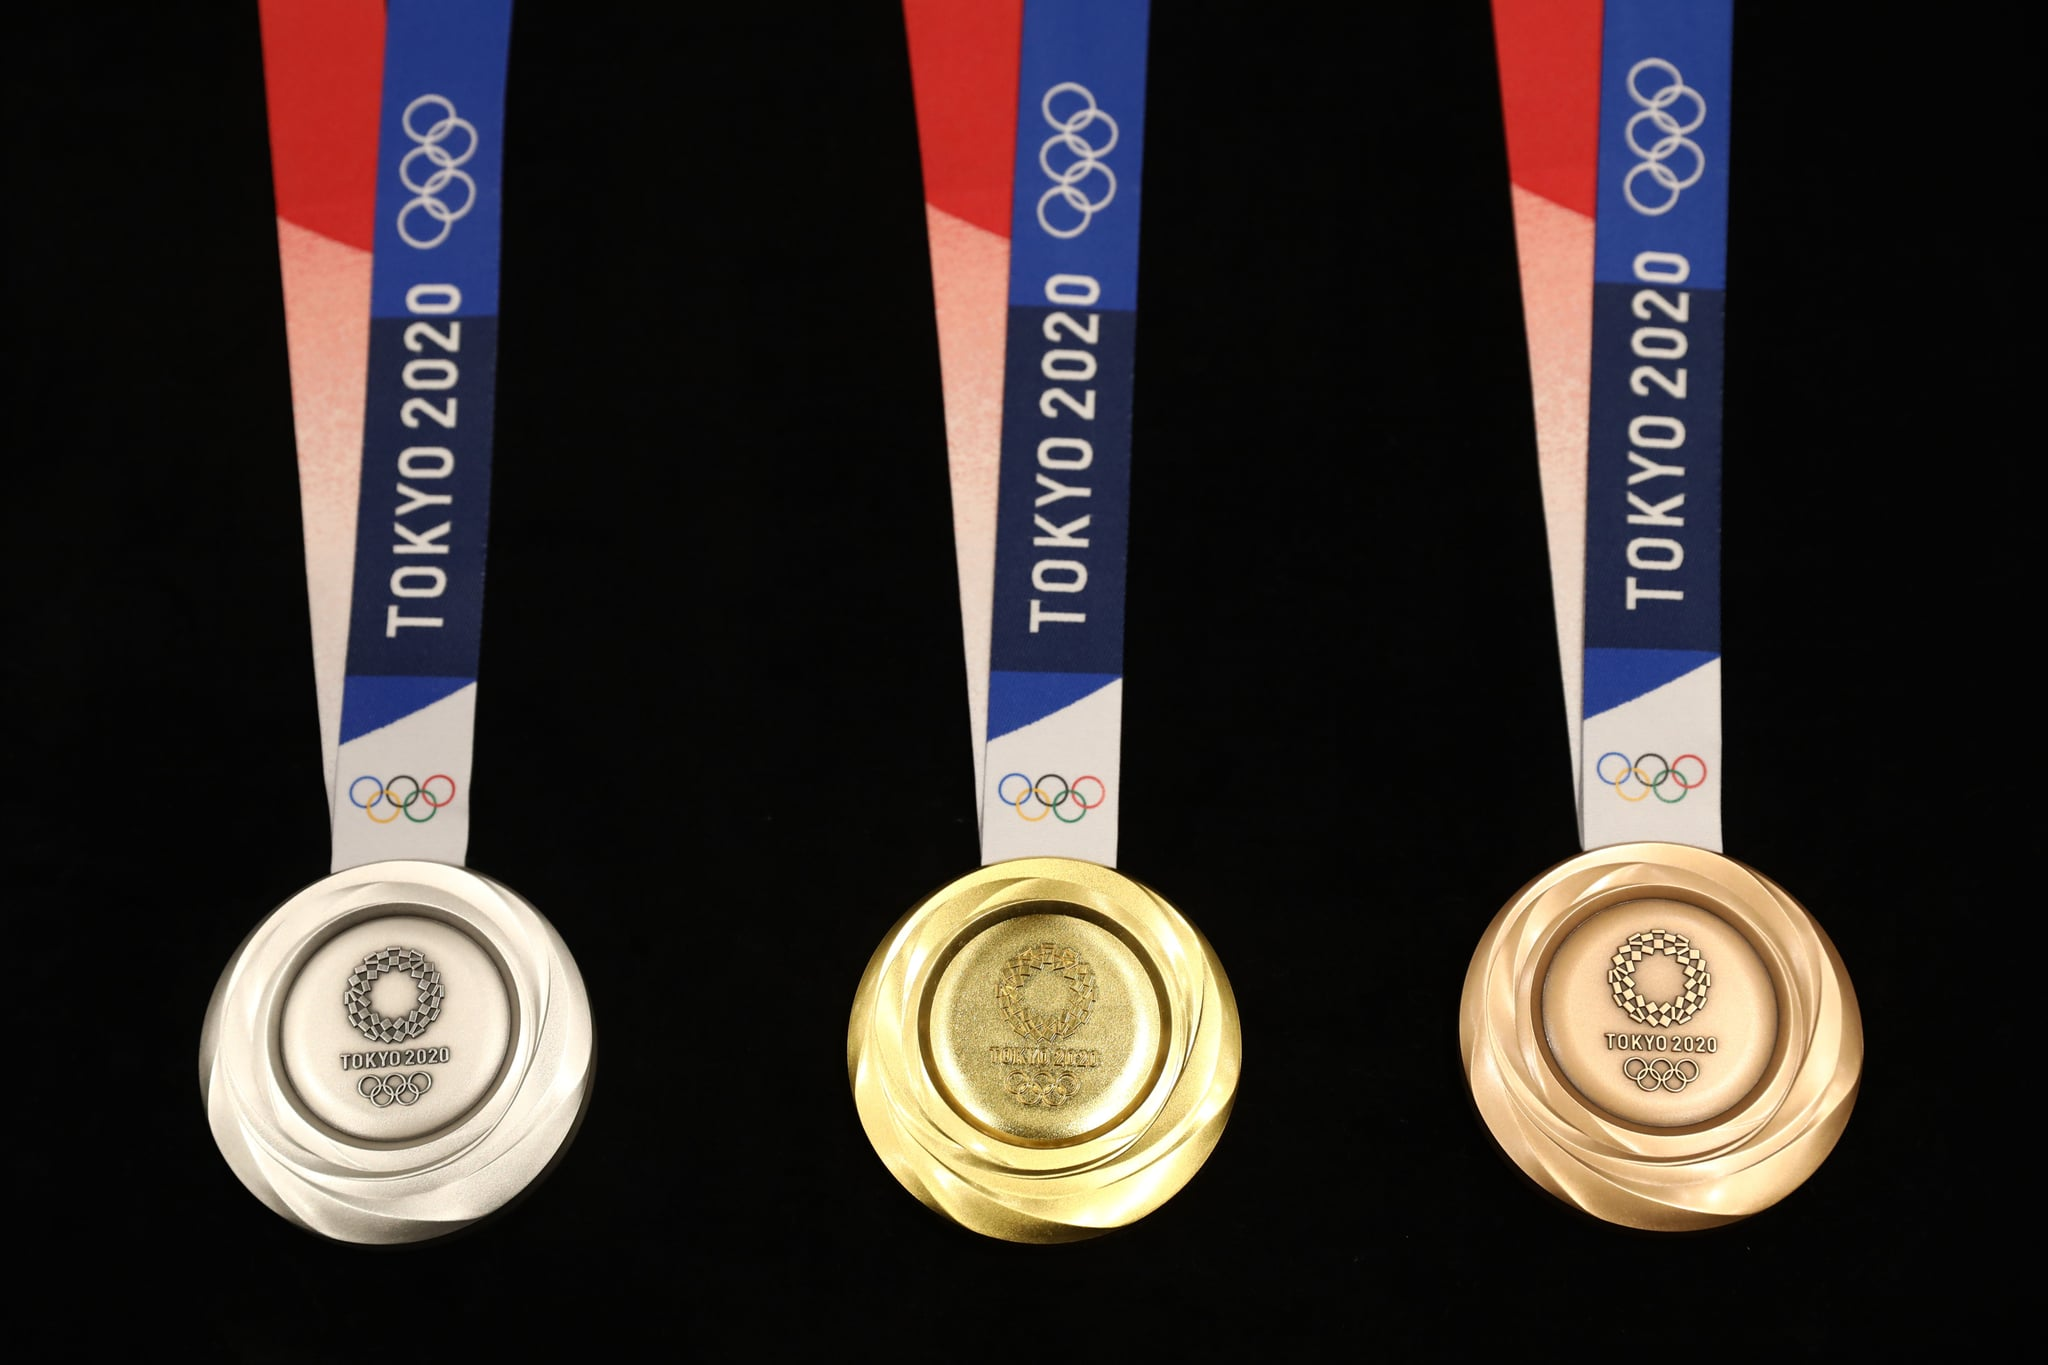 Medals for the Tokyo 2020 Olympic Games are unveiled during a ceremony marking one year before the start of the games in Tokyo on July 24, 2019. - Tokyo entered the final leg of its marathon Olympic preparations, marking a year until the 2020 Games open with officials promising a high-tech but eco-friendly event. (Photo by Behrouz MEHRI / AFP)        (Photo credit should read BEHROUZ MEHRI/AFP/Getty Images)